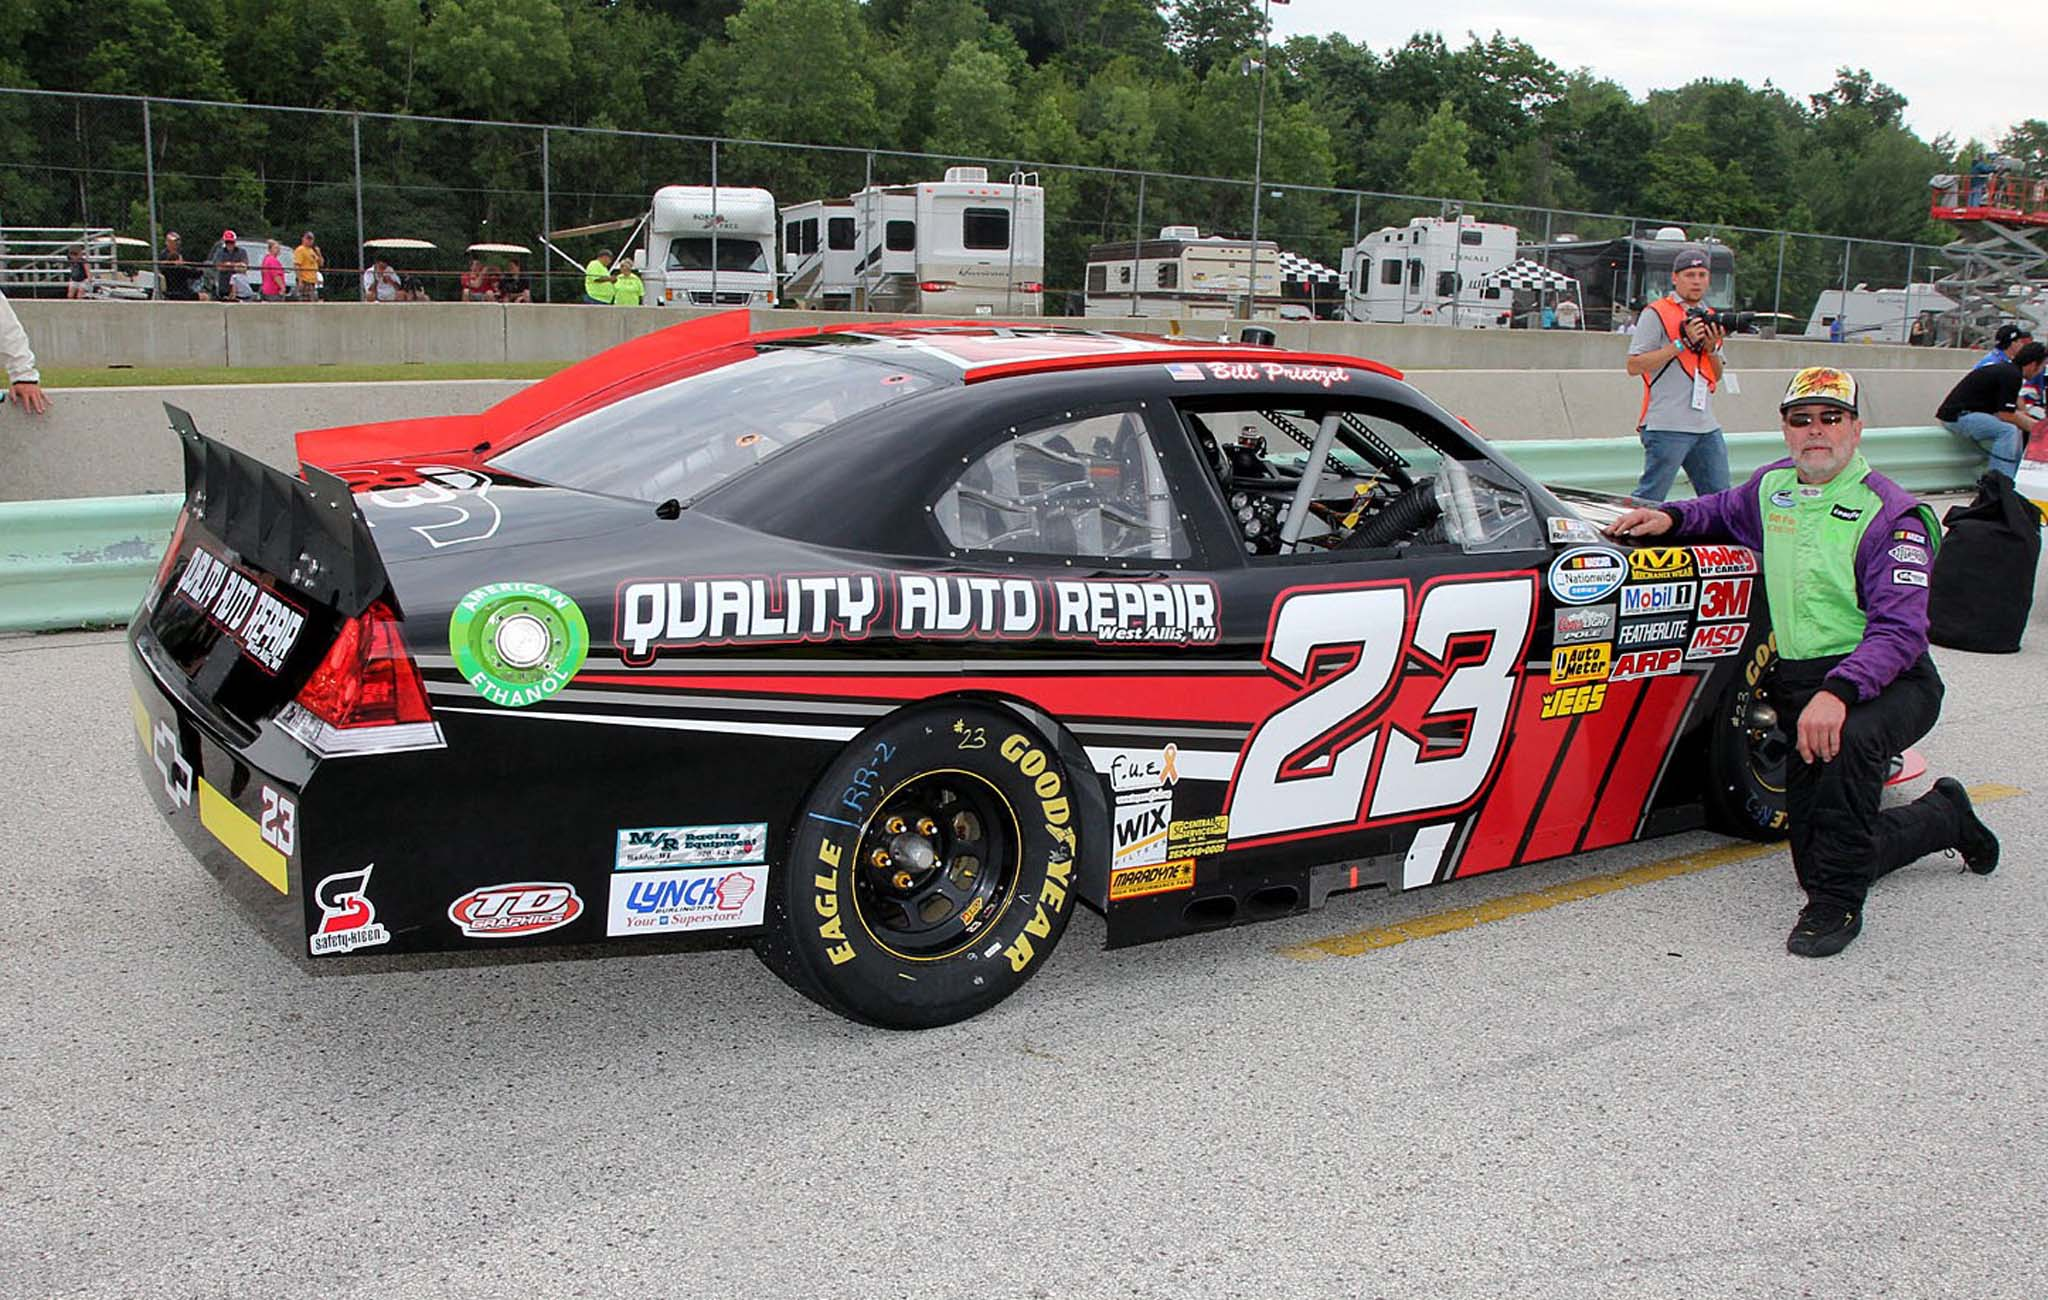 Prietzel finished 27th in his first Nationwide start in 2013.